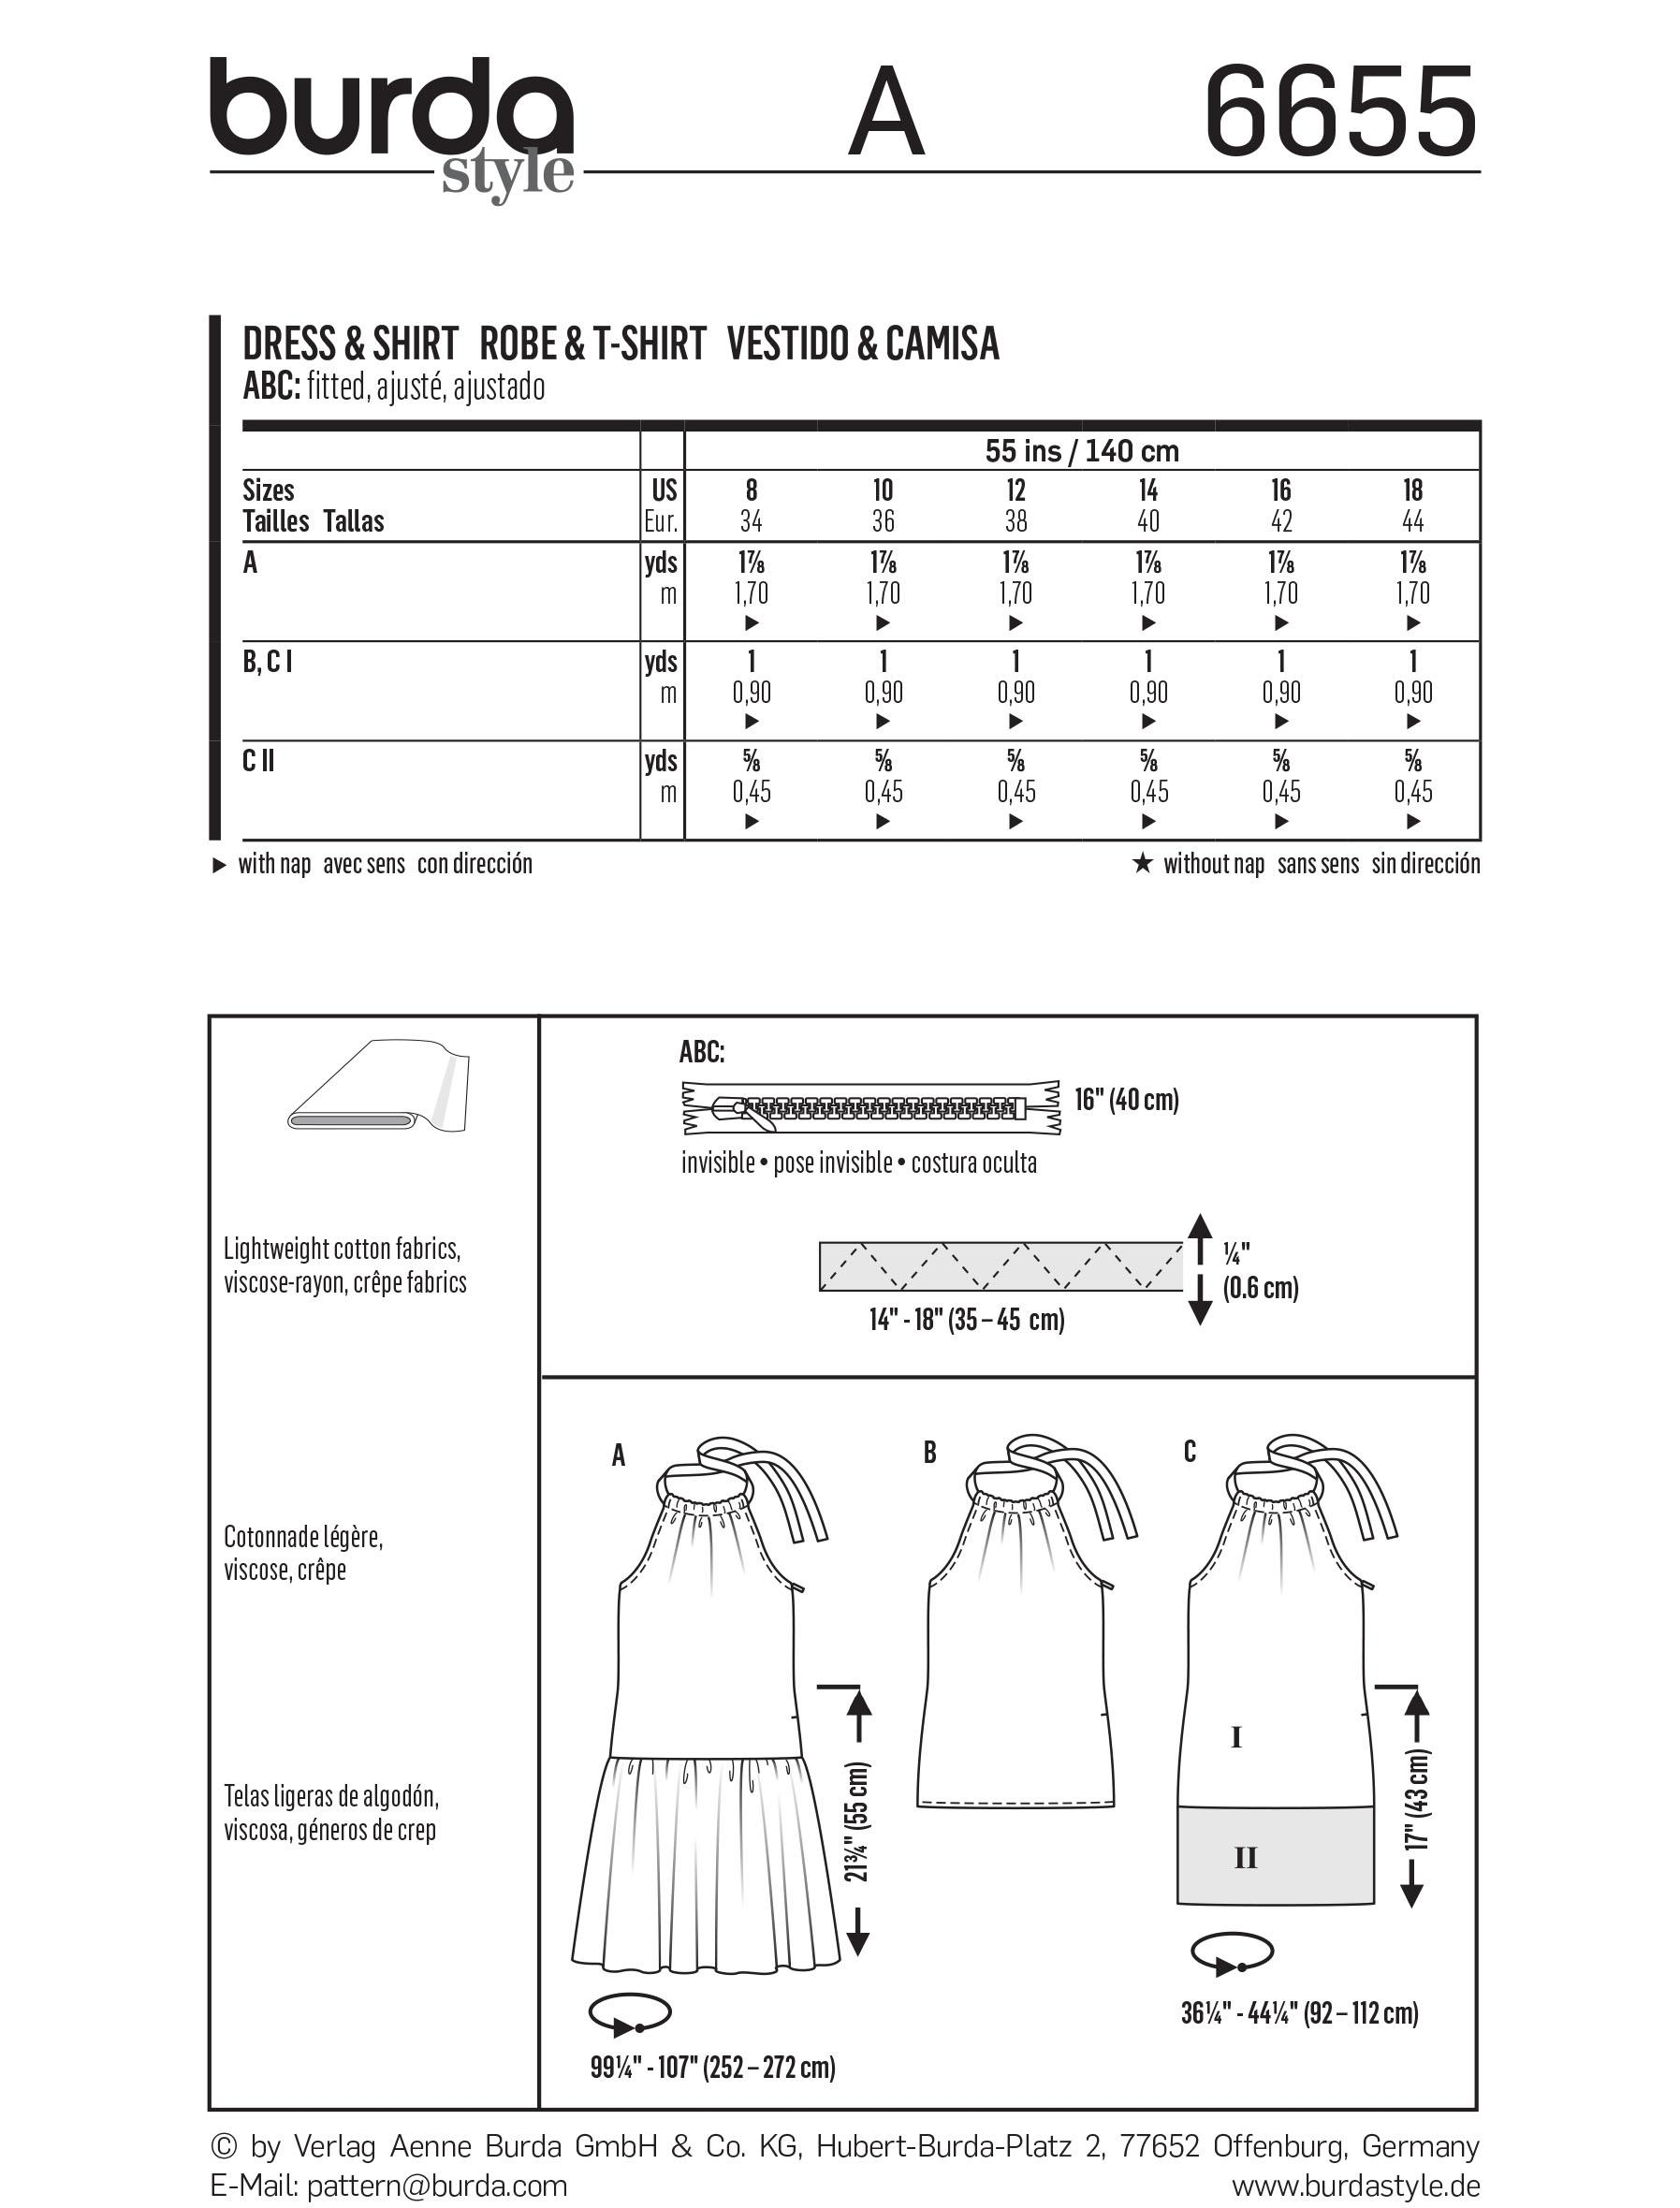 Burda B6655 Women's Dress & Shirt Sewing Pattern